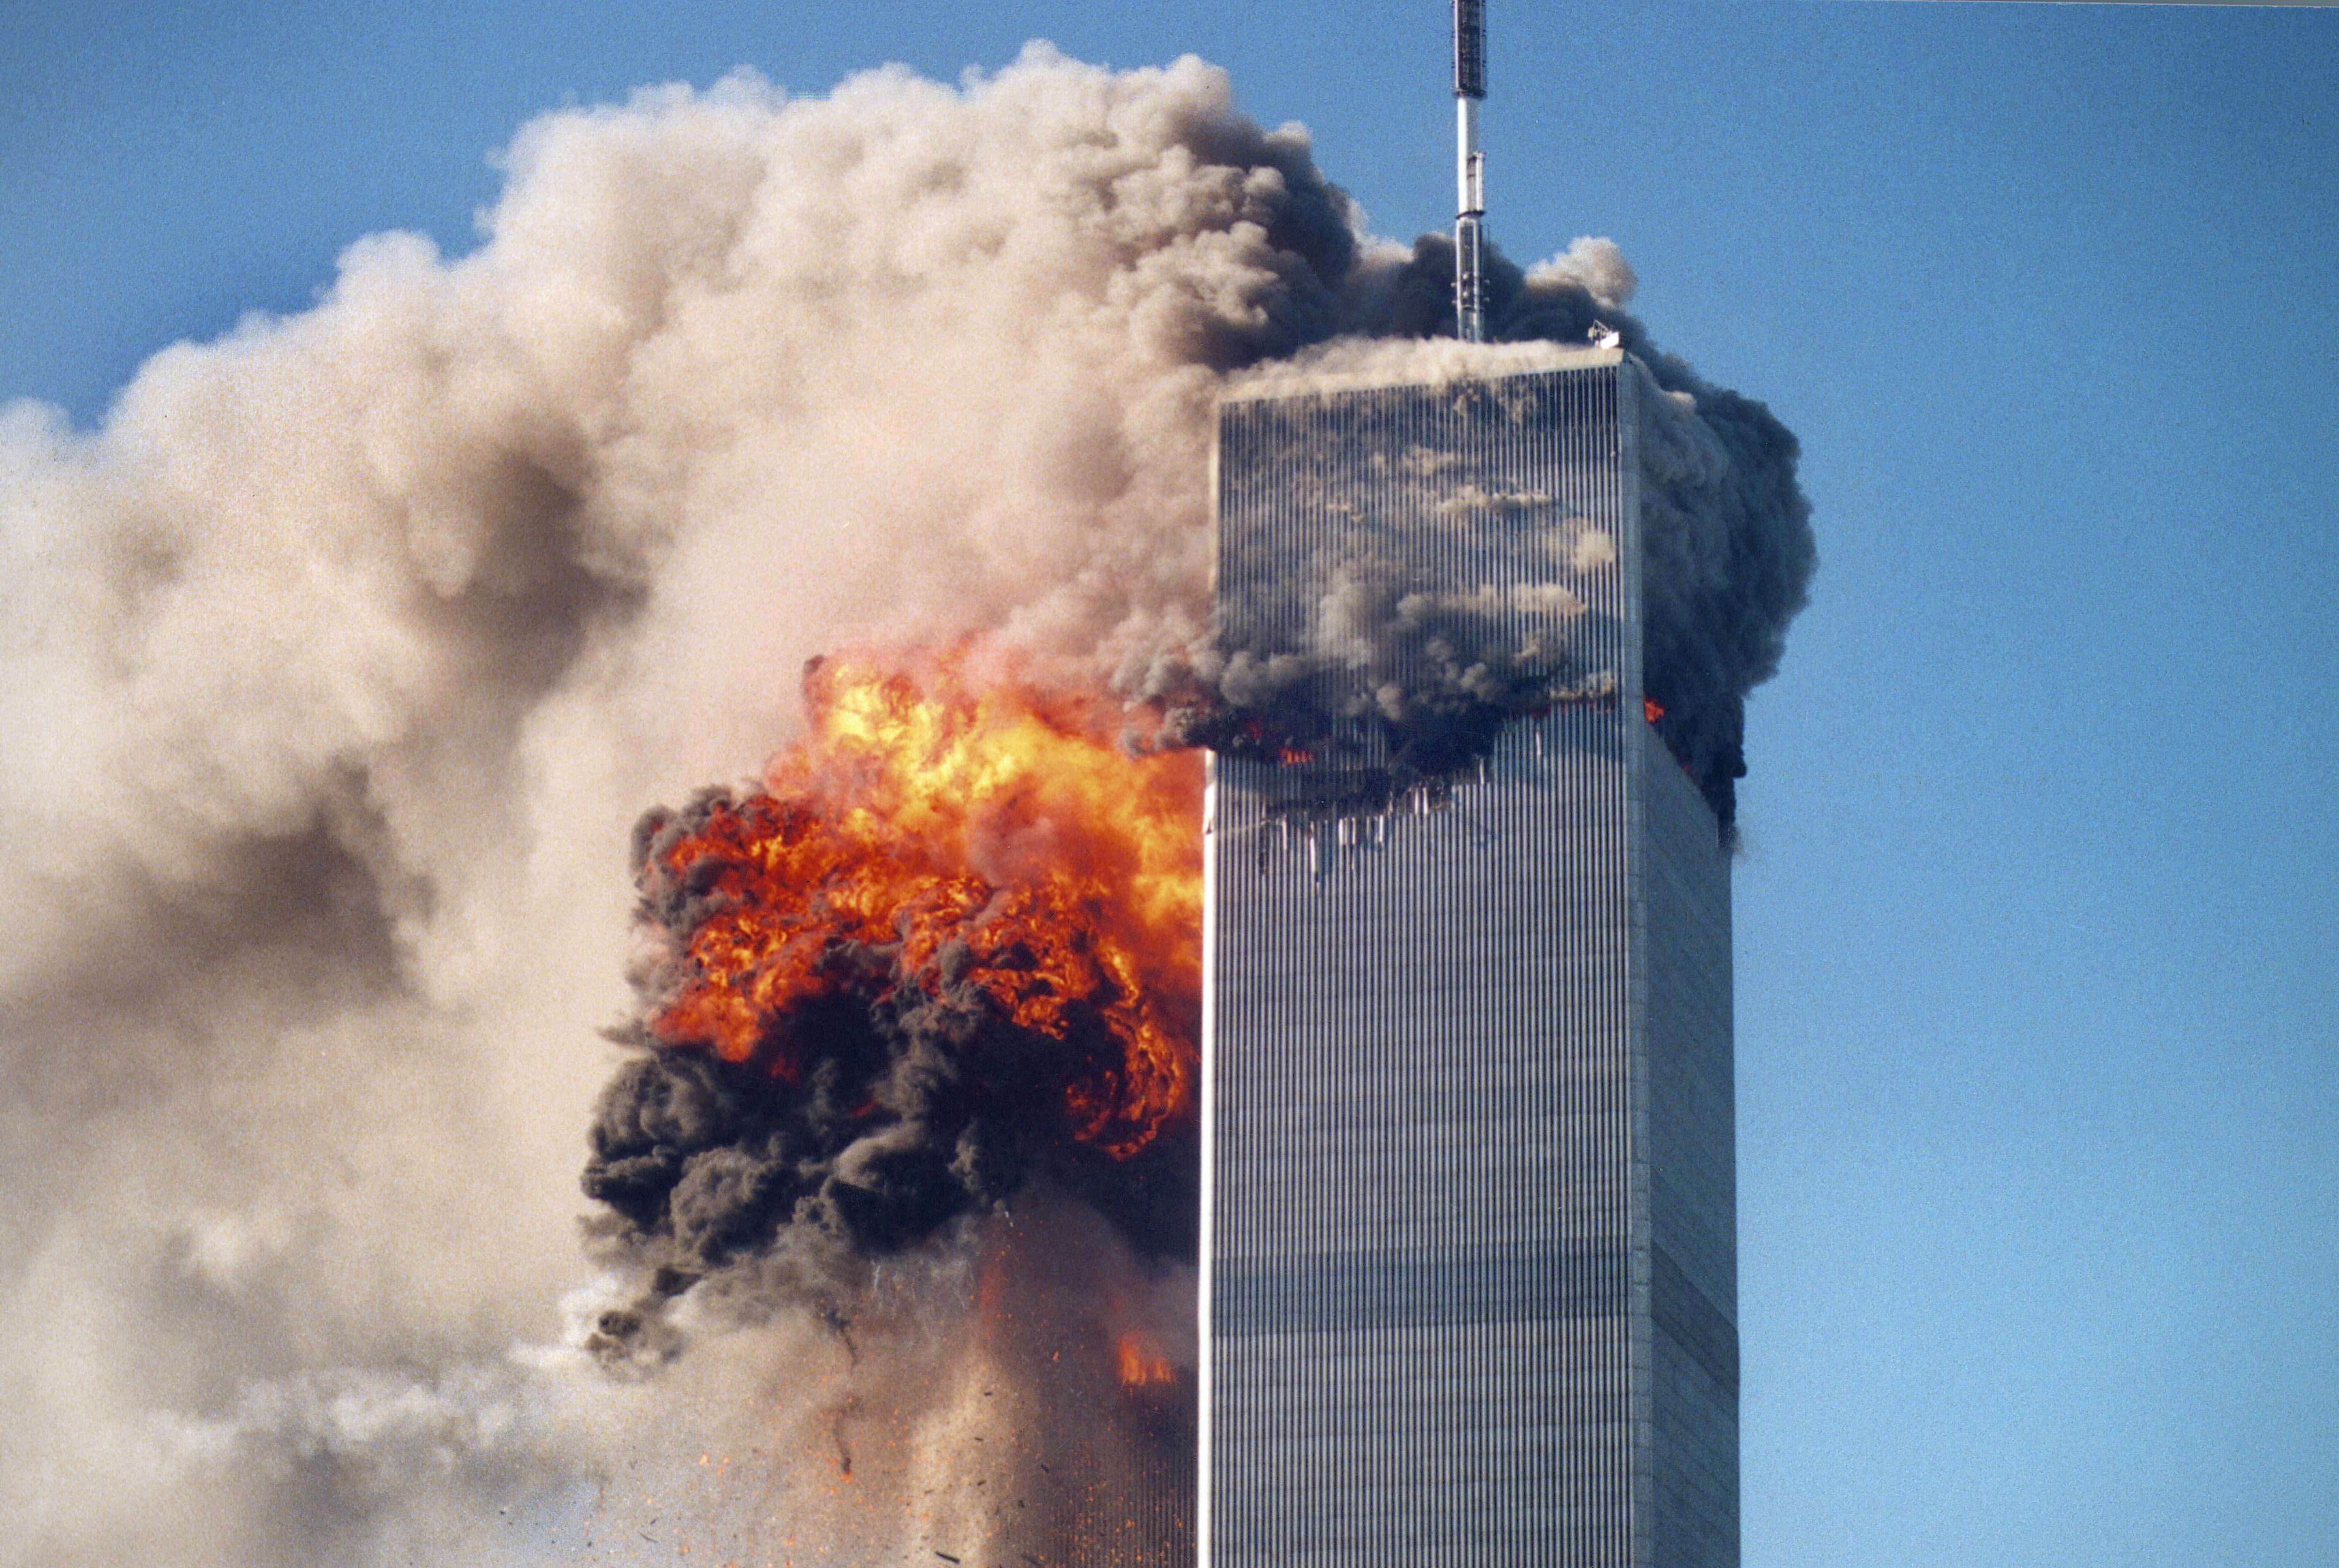 the world after 9 11 Some 400,000 people have been affected by cancer, disease and mental illnesses from the 9/11 attacks, according to data obtained exclusively by newsweek.